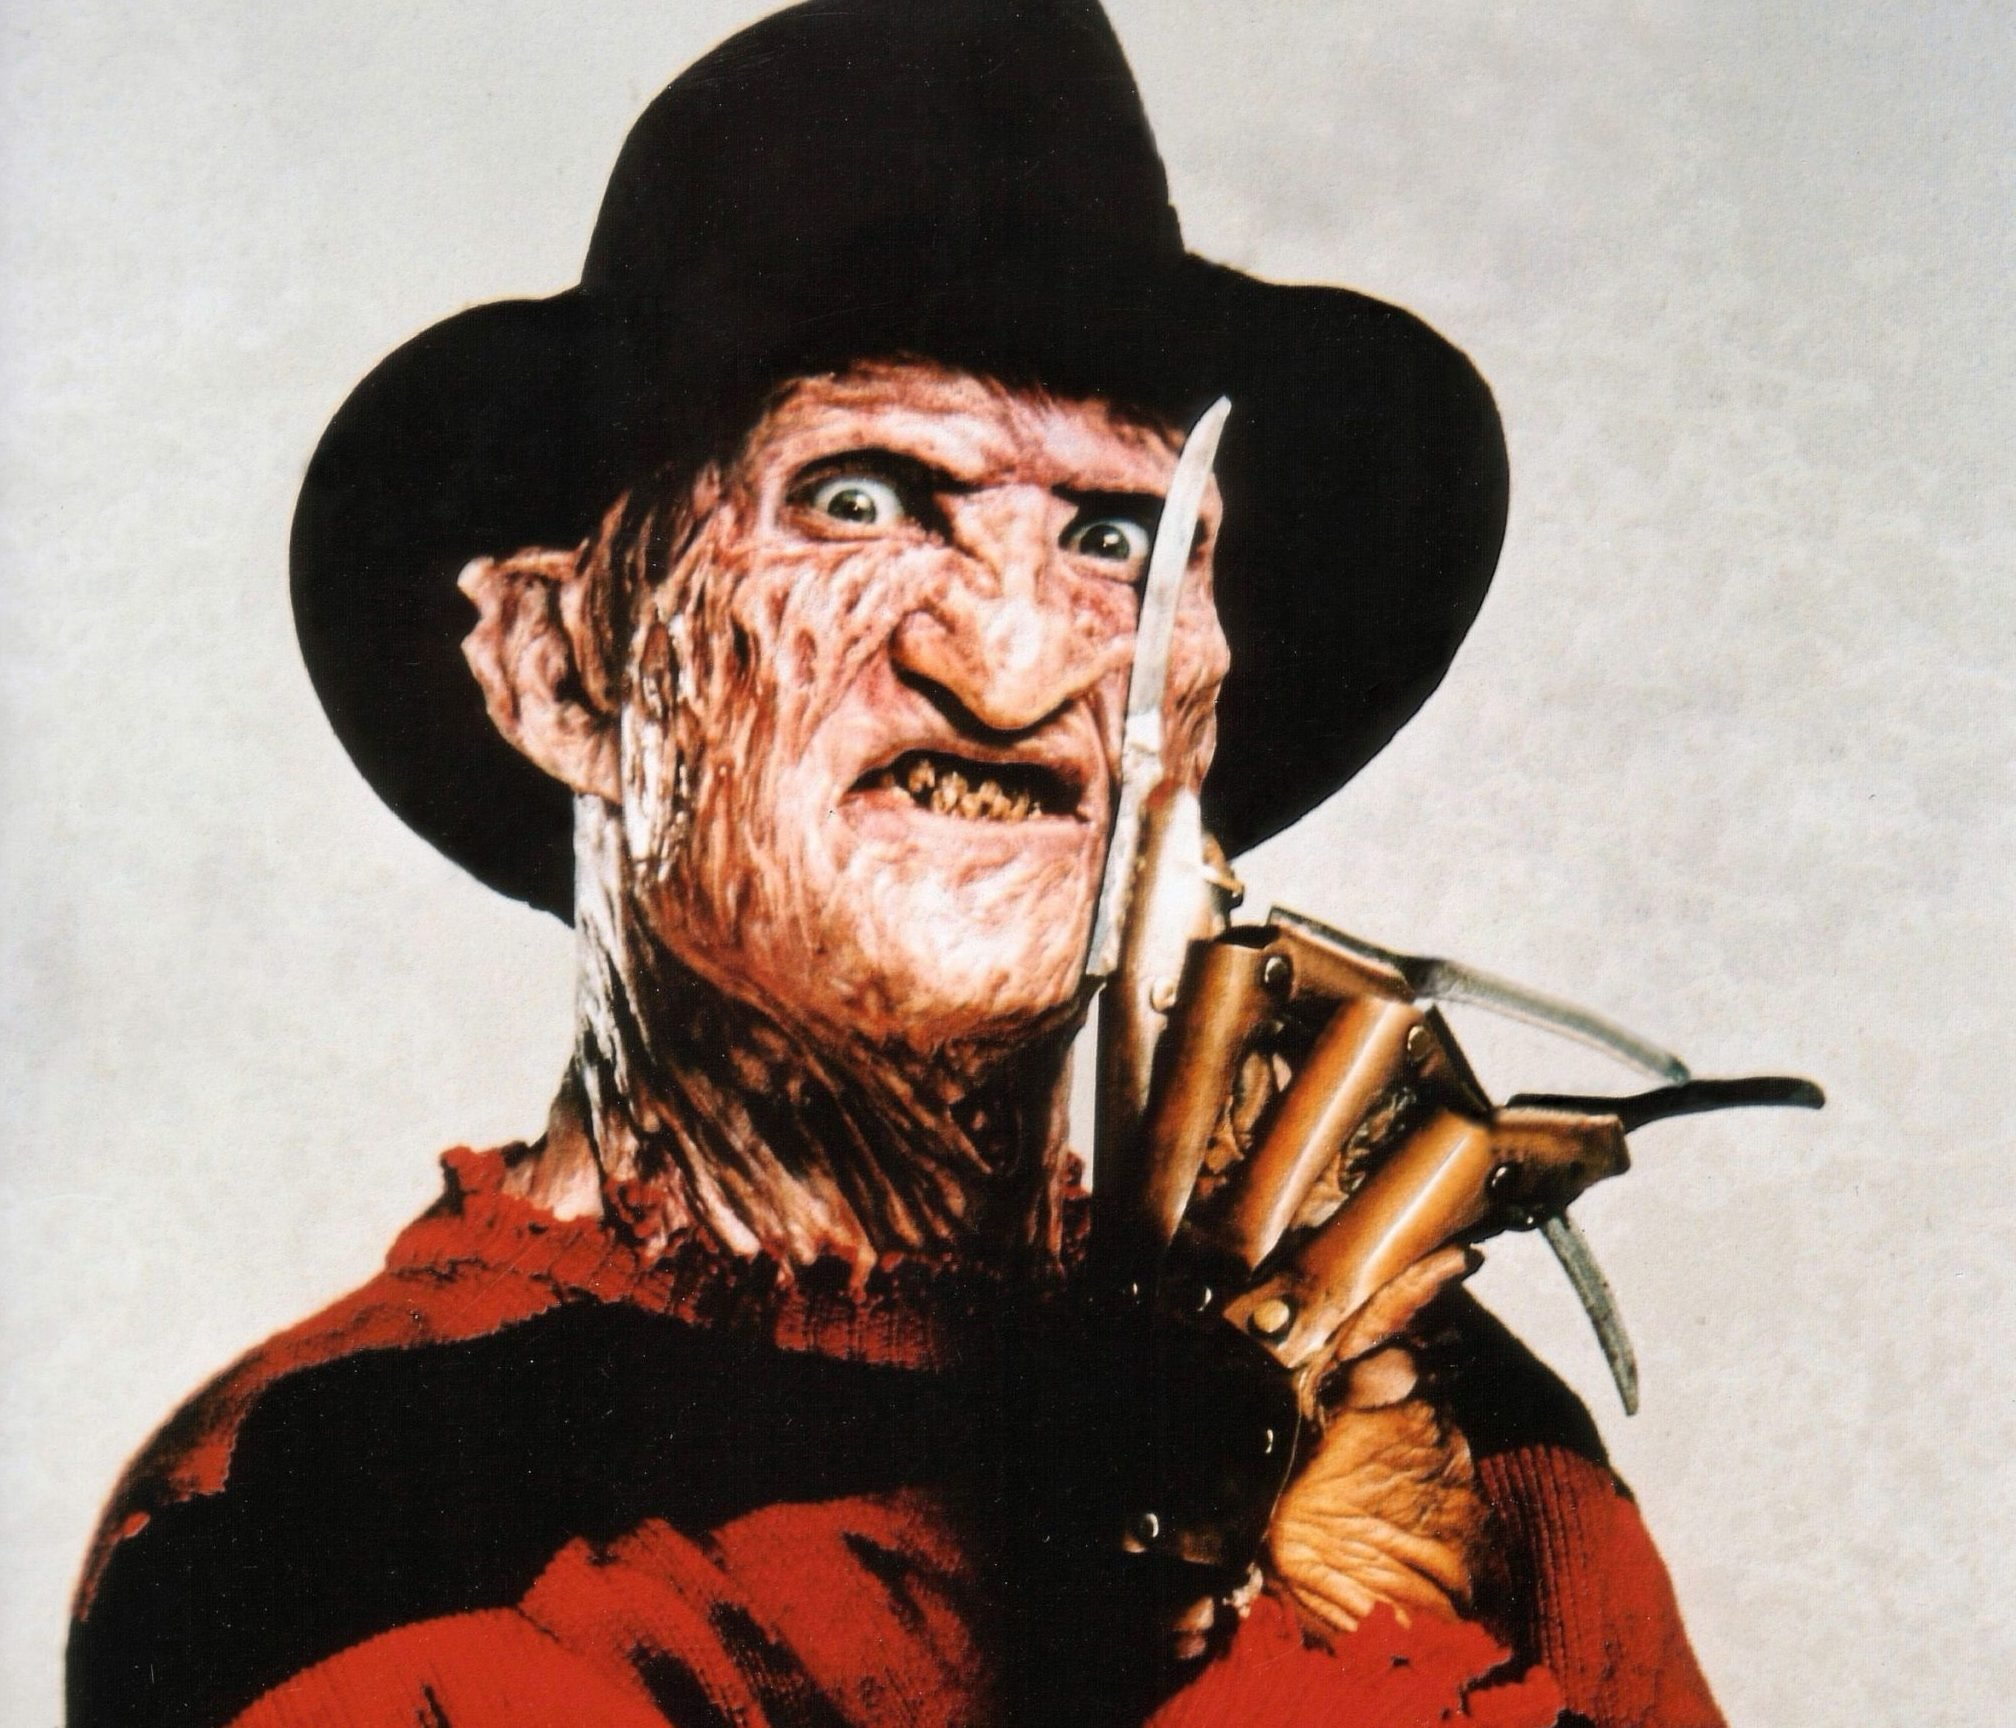 1537607637 freddy kreuger scaled e1623418449779 A Nightmare On Elm Street Is Based On A True Story, And More You Never Knew About The Film